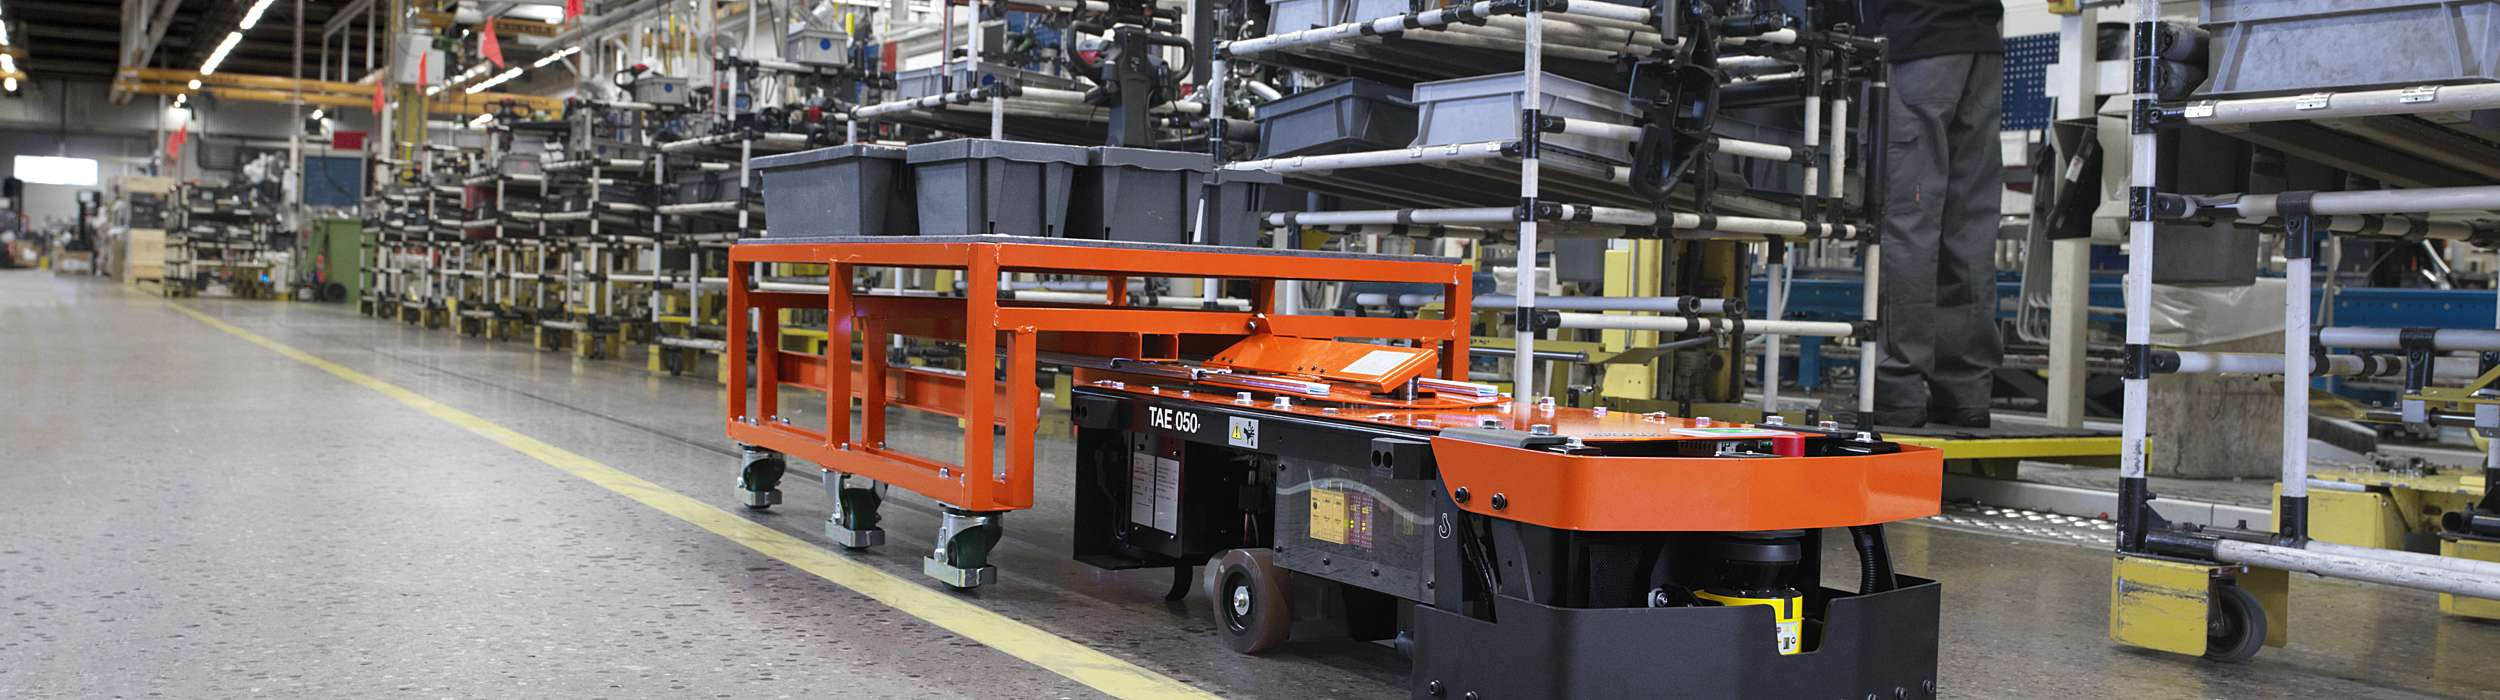 BT Autopilot TAE050 automated guided vehicle